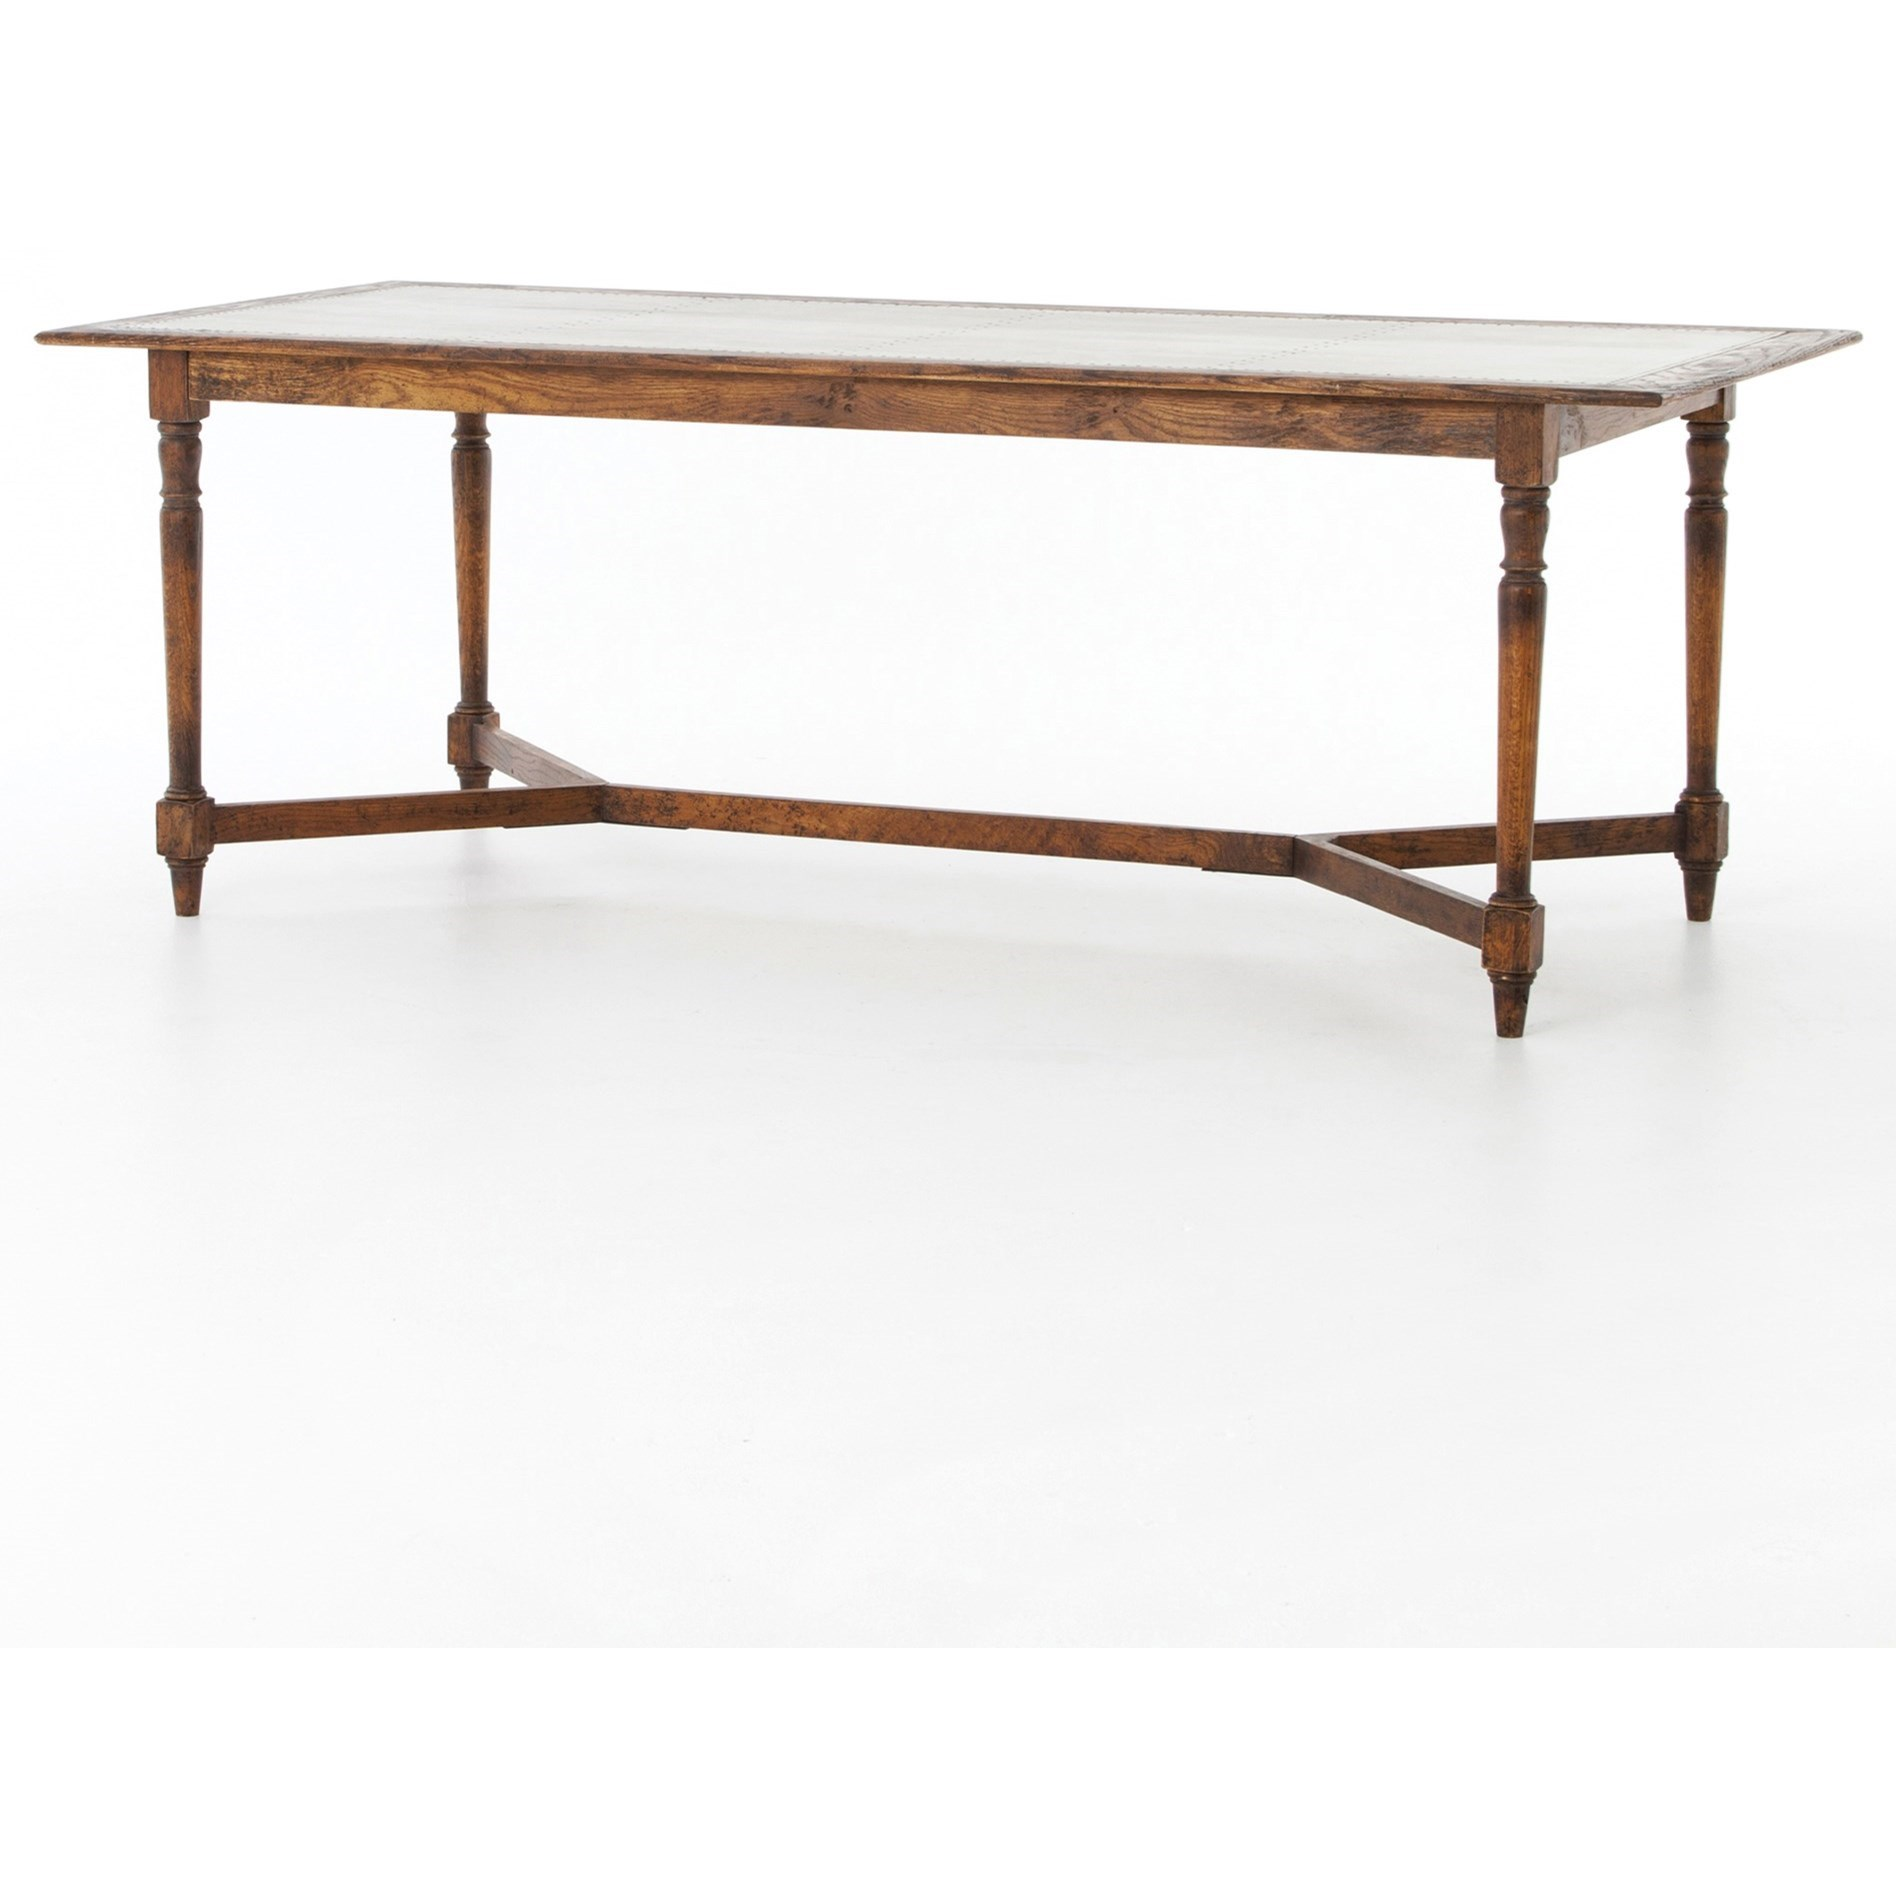 Four hands hughes sylvan dining table with trestle base for Dining table tj hughes